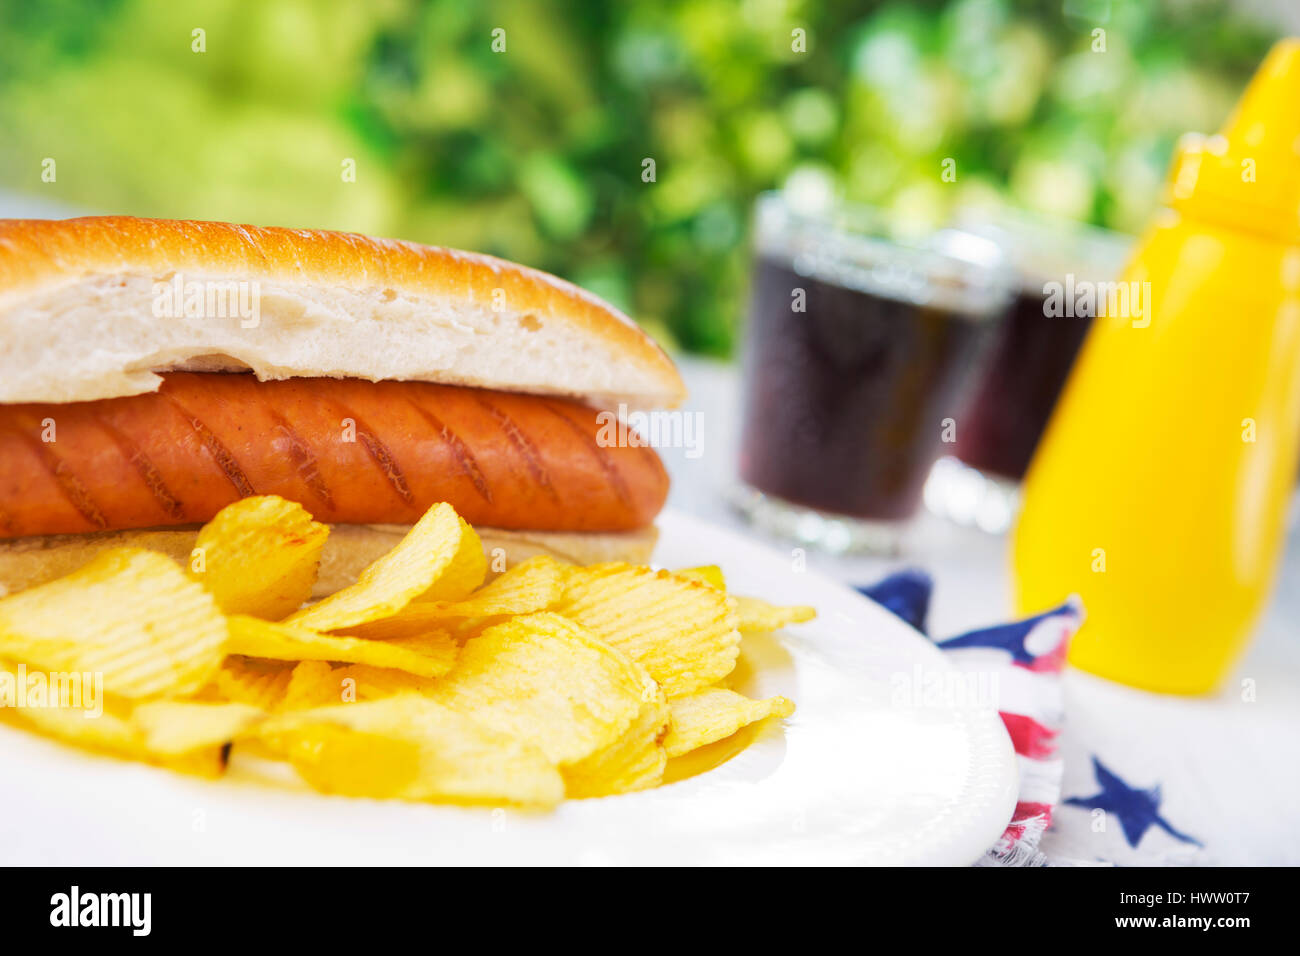 A tasty hot dog with potato chips on an outdoor table. - Stock Image